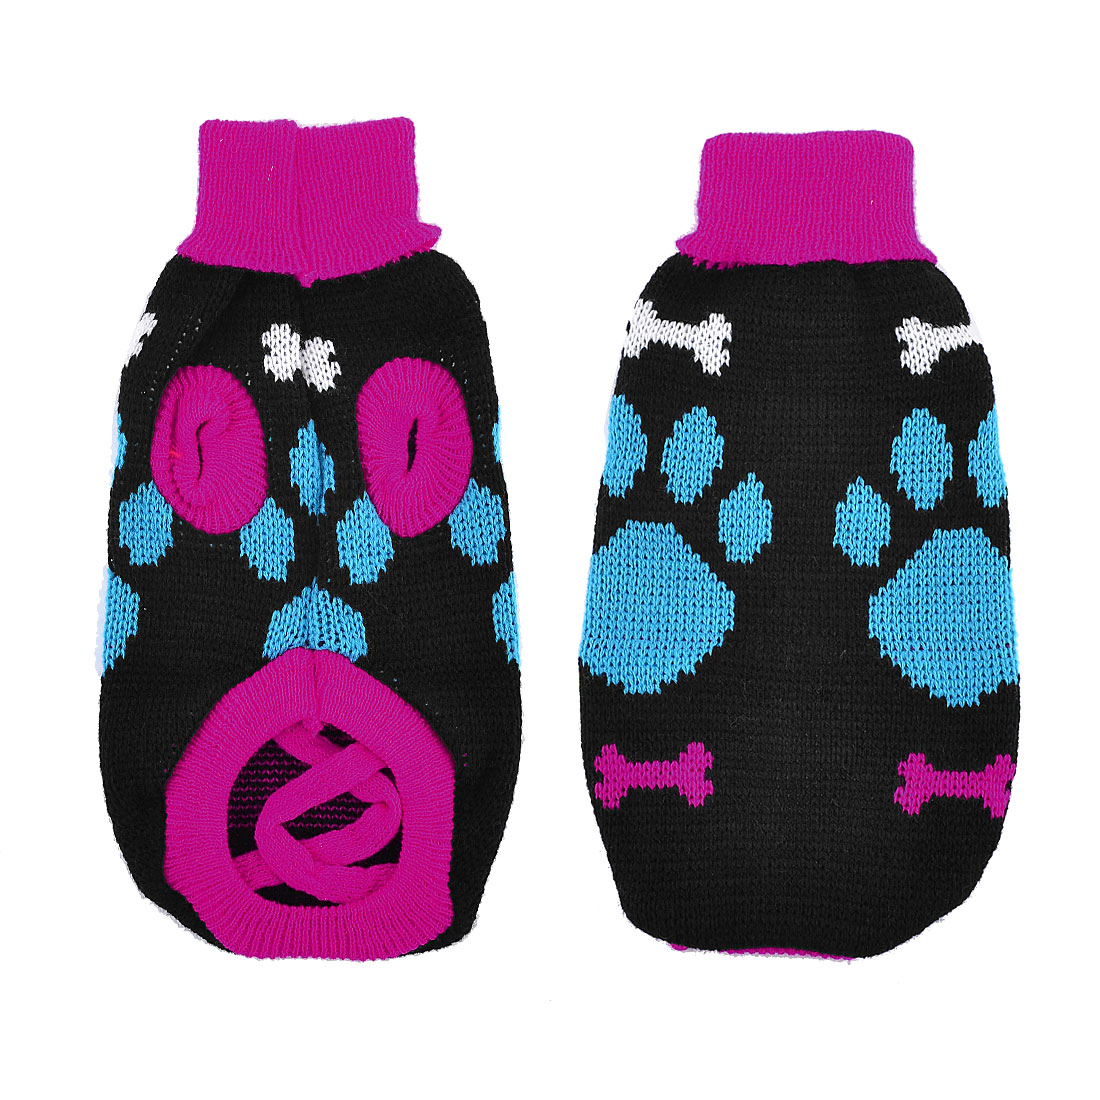 Pet Dog Doggy Blue Fuchsia Paw Pattern Turtleneck Sweater Apparel Size XXS